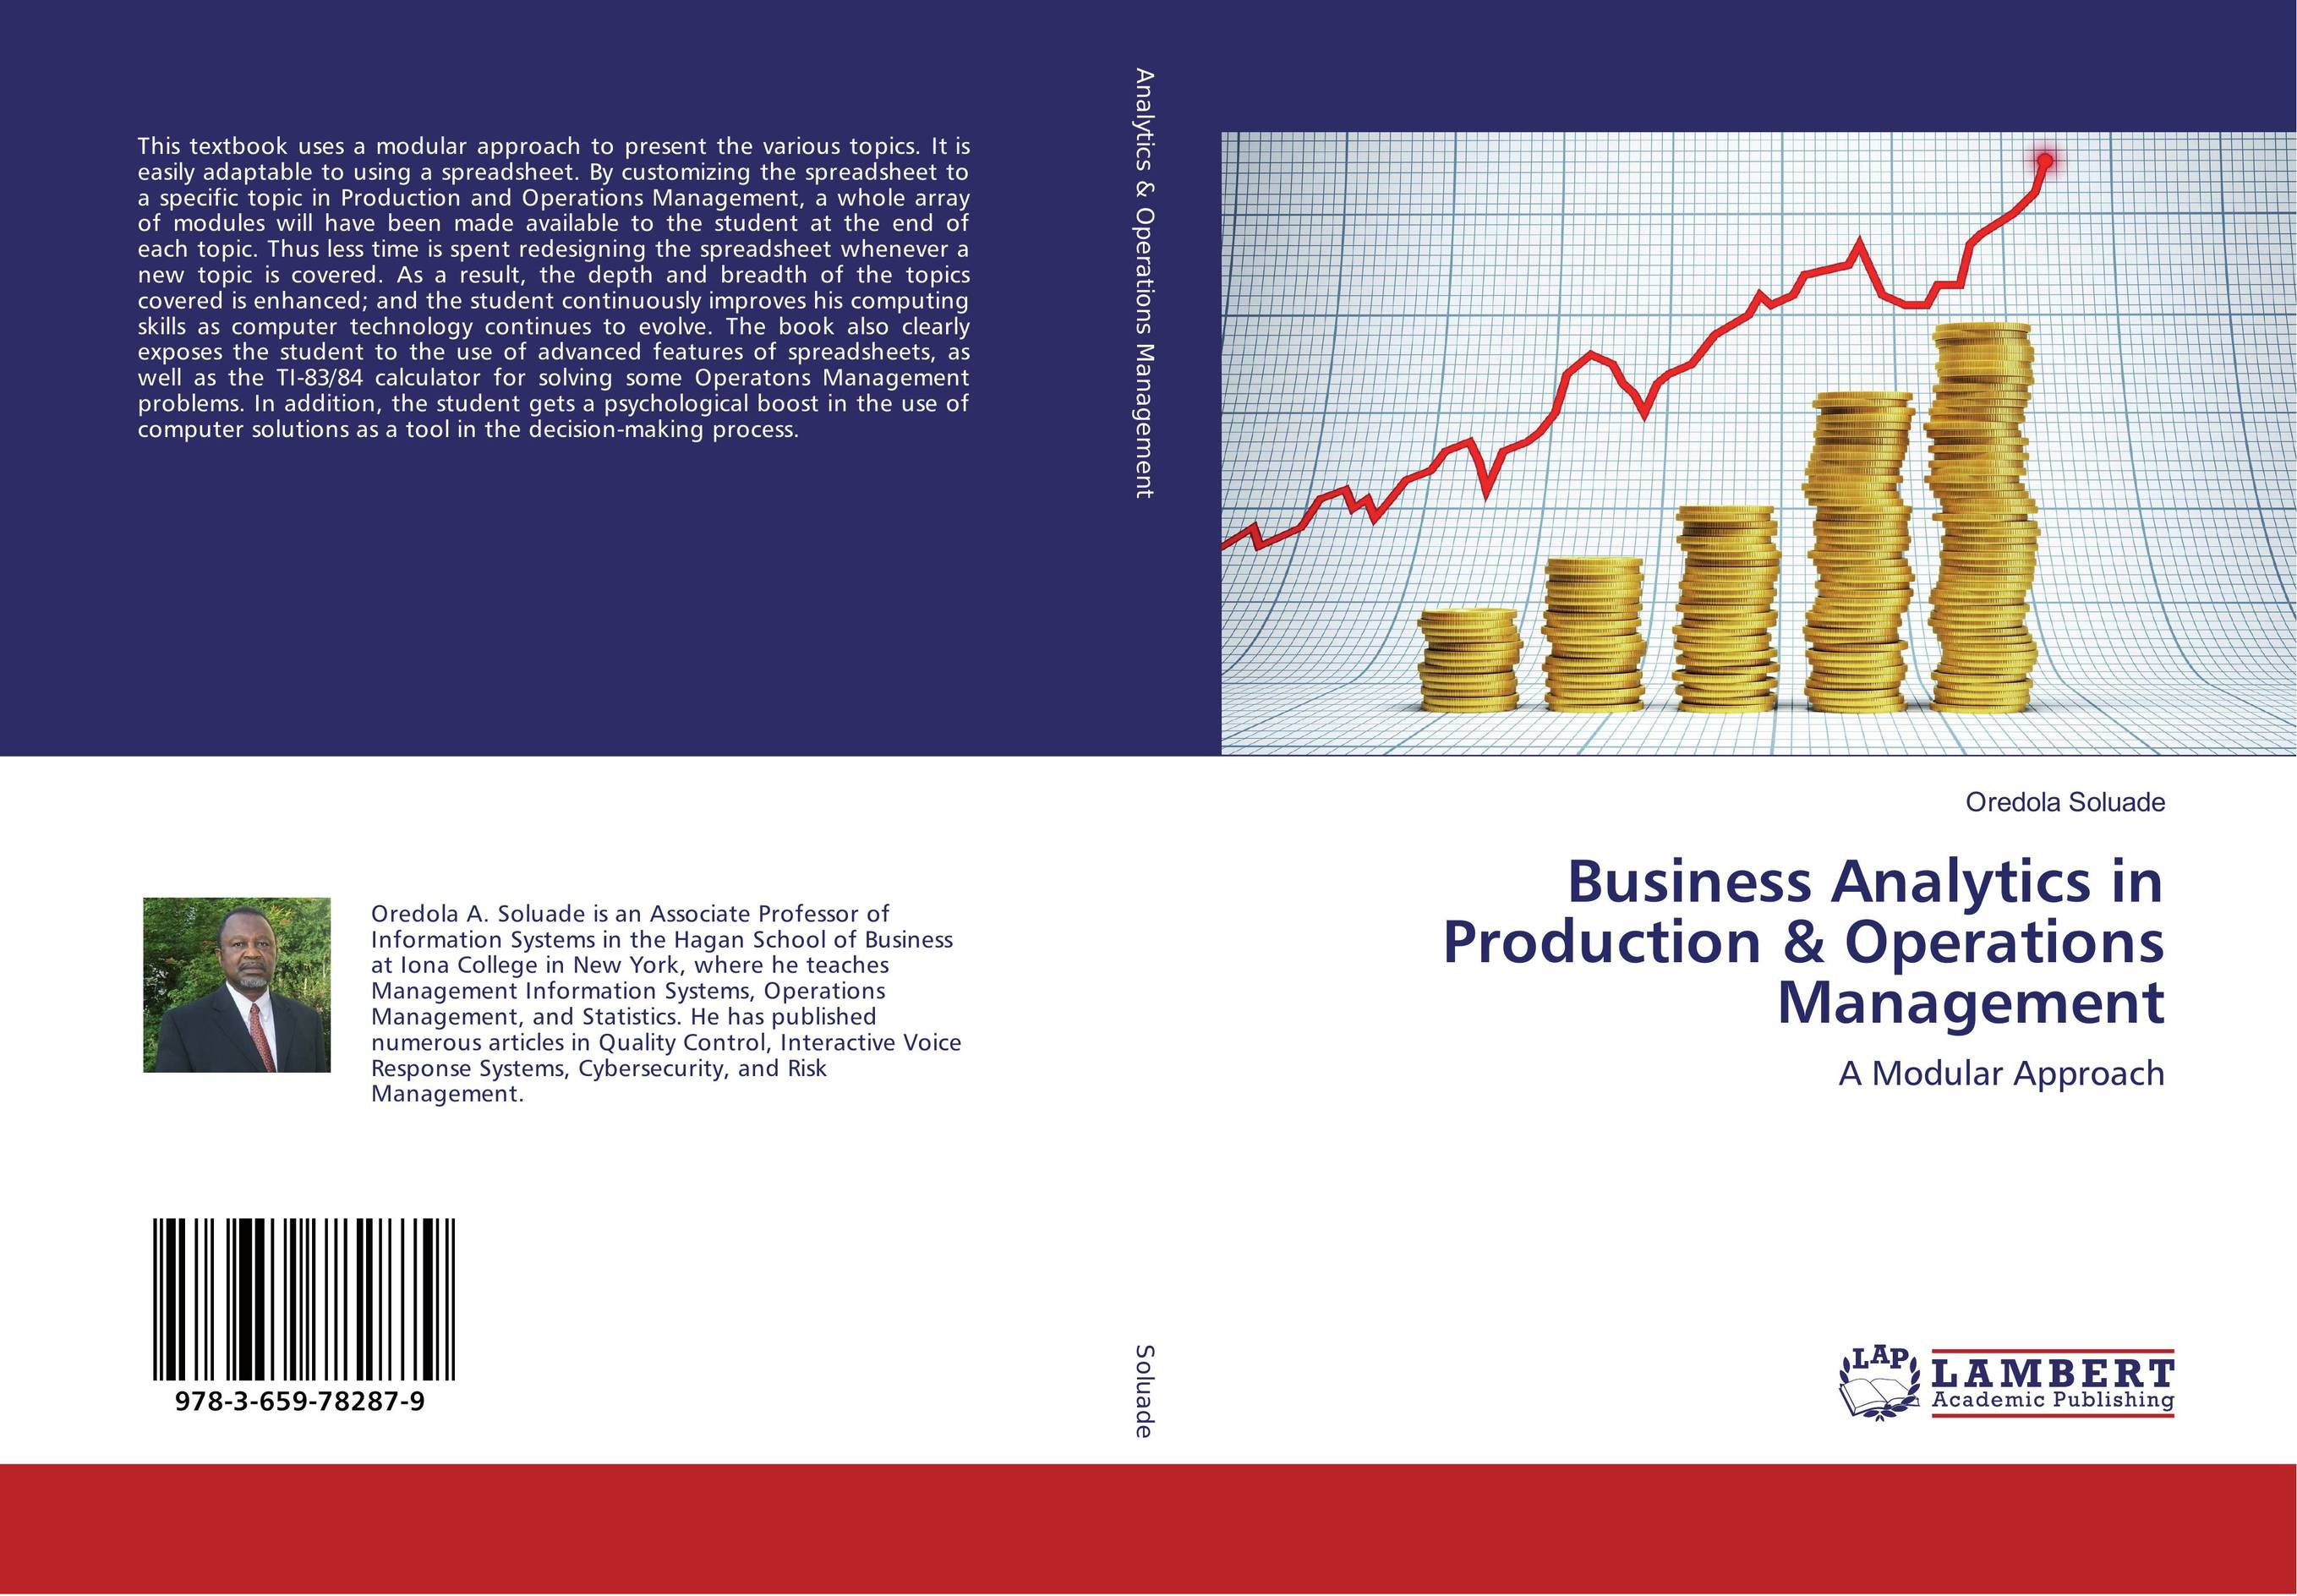 Business Analytics in Production & Operations Management frank buytendijk dealing with dilemmas where business analytics fall short